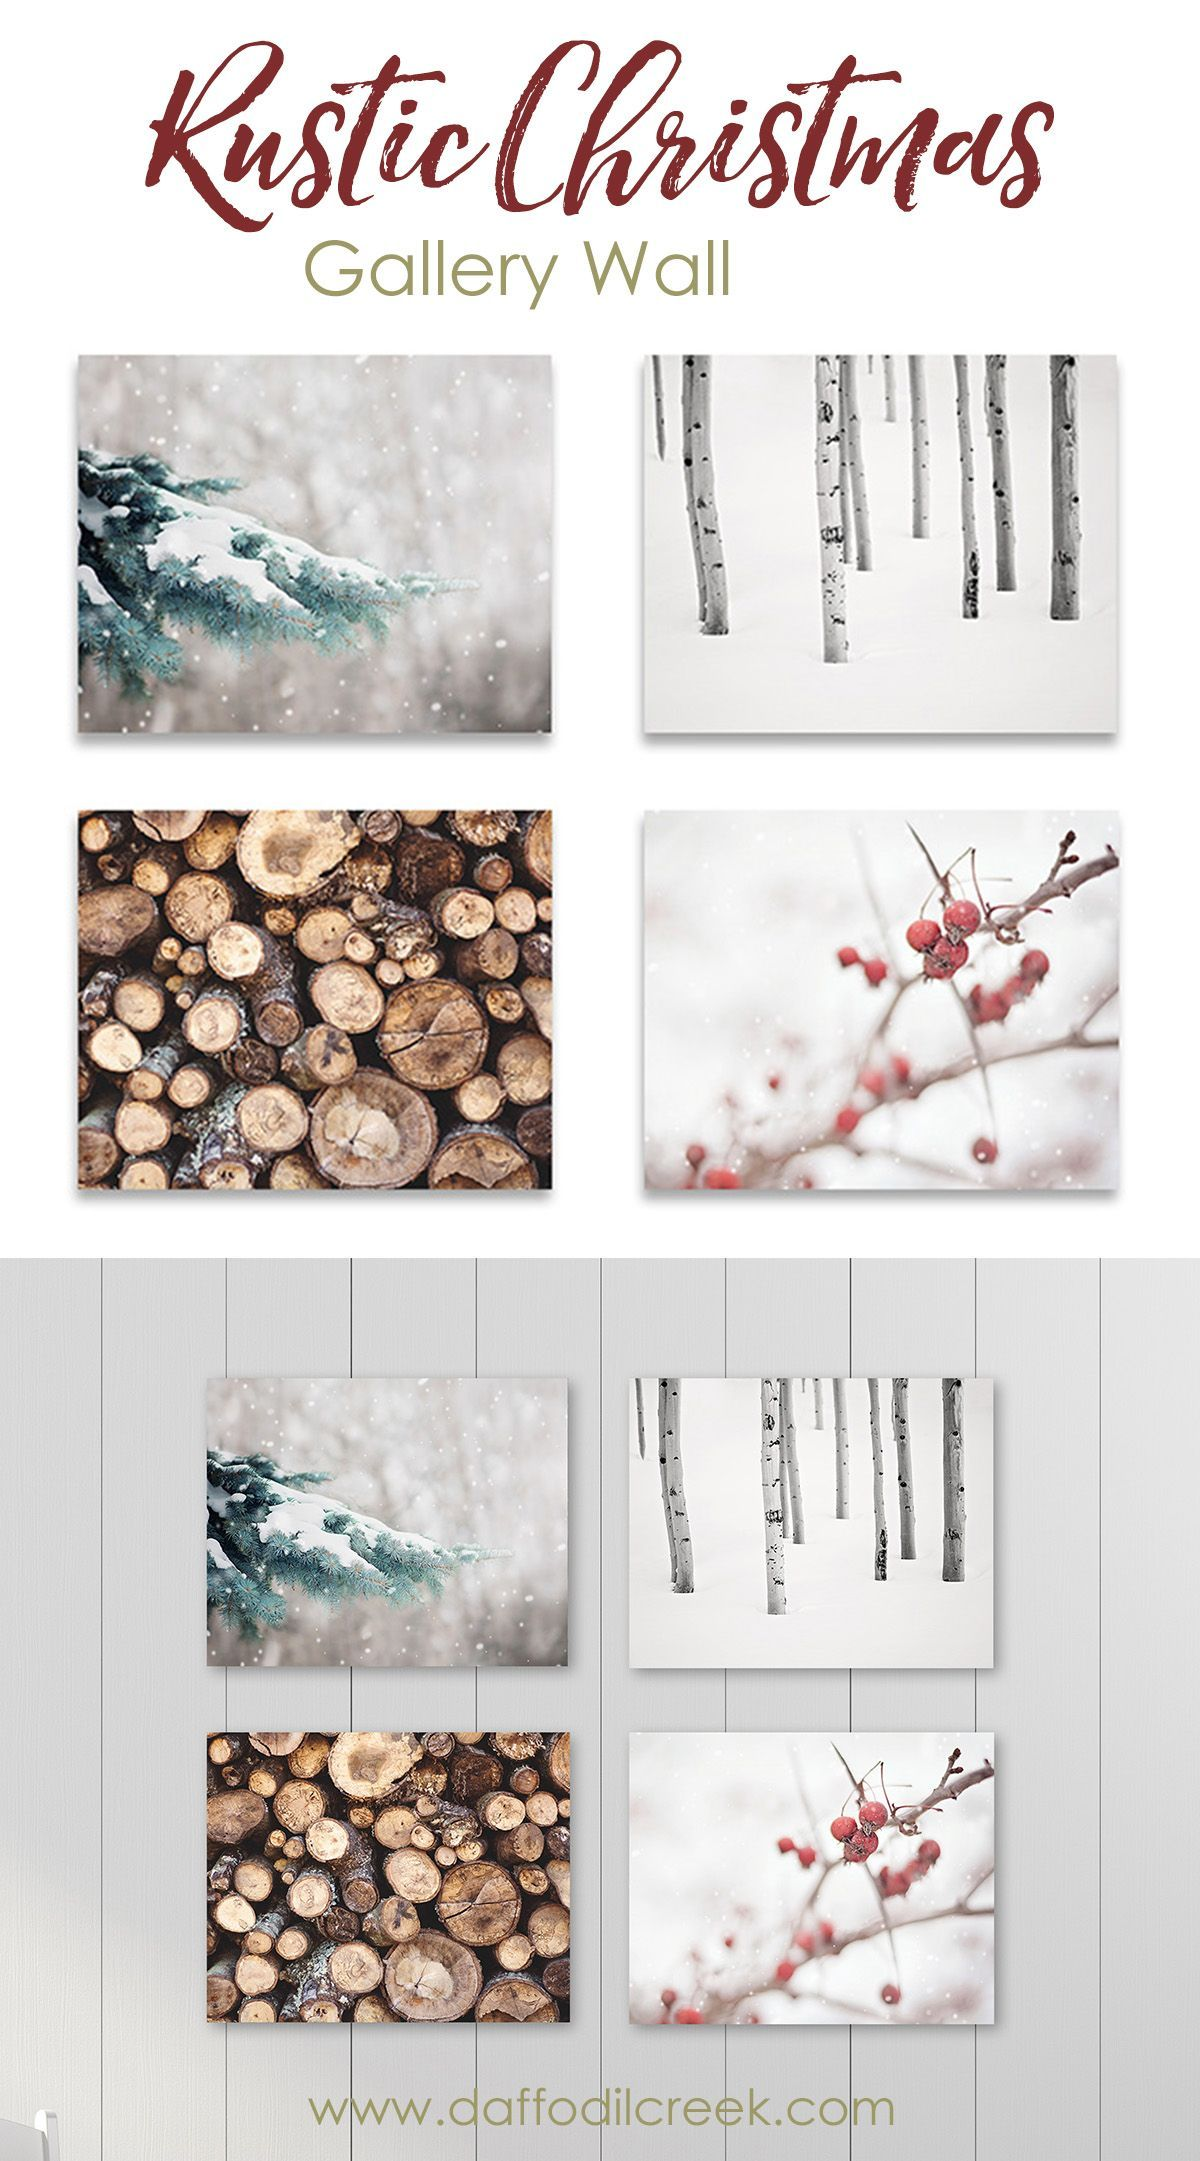 Wall Art Set of Four Christmas Wall Art Set of Four - Celebrate a crisp and cozy holiday season with thisrusticChristmas print set.This collection offour alpine prints will create afestive rustic Christmas gallery wall and add a lovely rustic touch to your holiday décor.Christmas Wall Art Set of Four - Celebrate a crisp and...